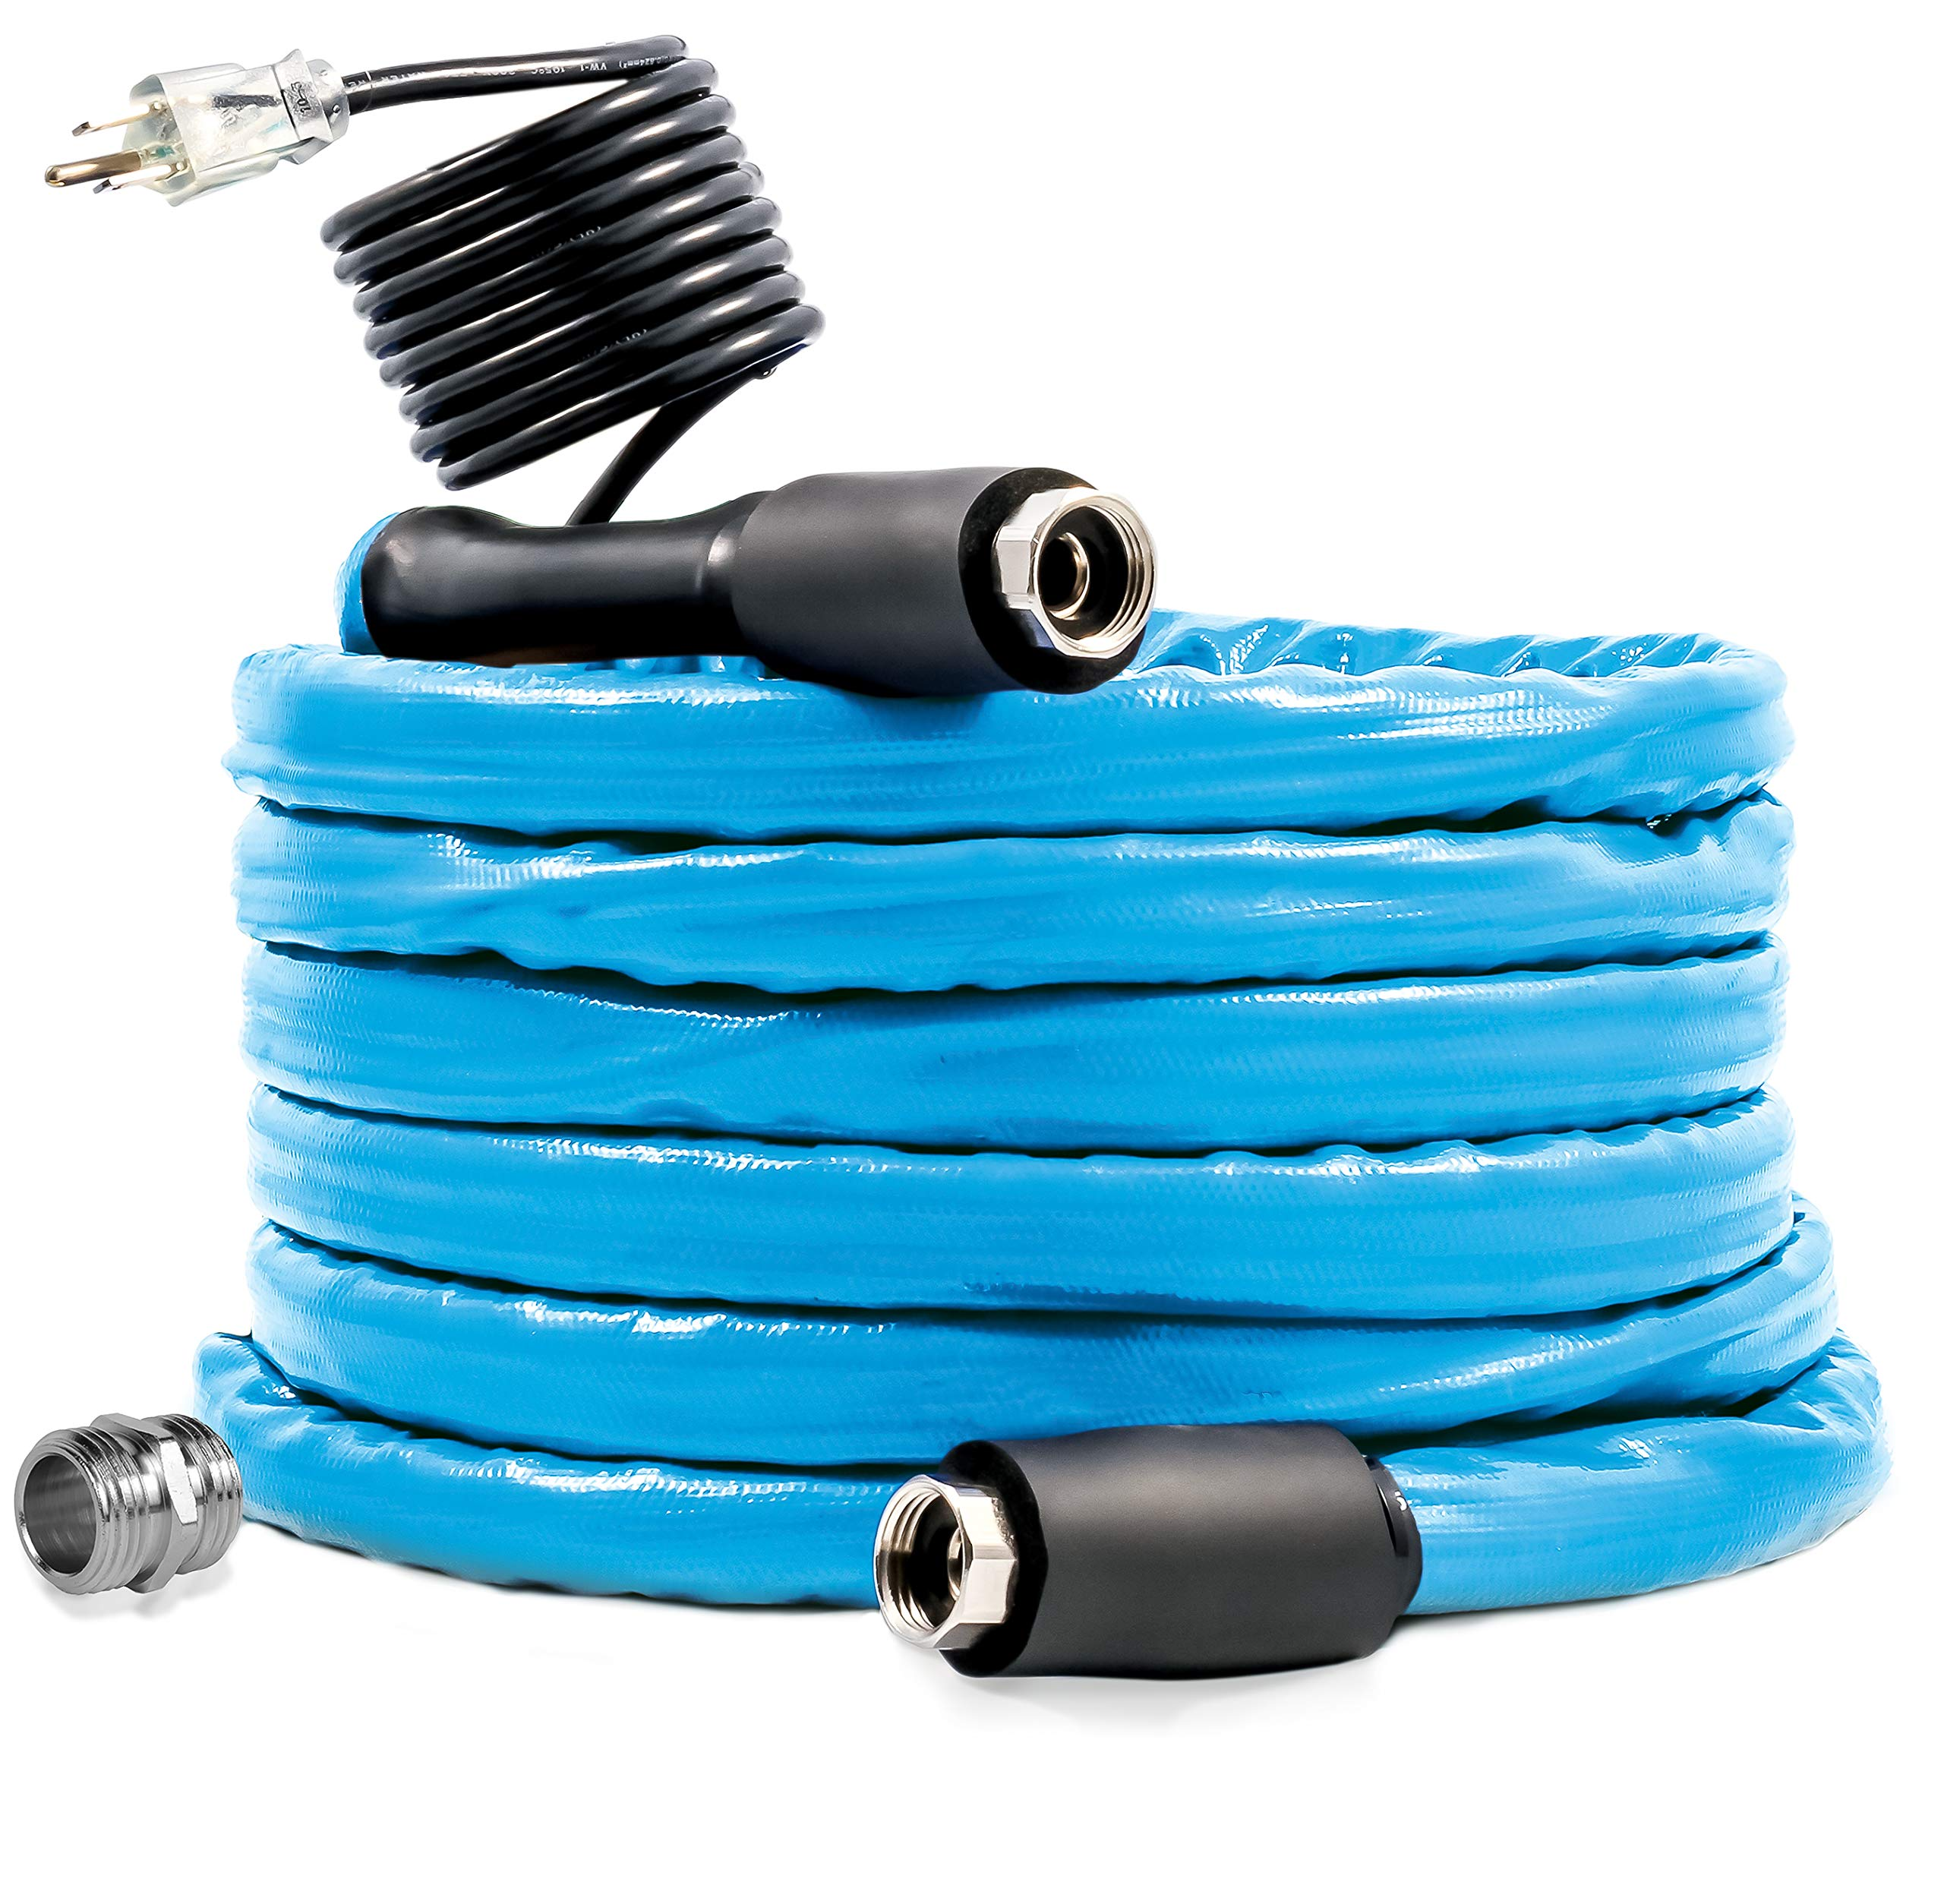 Camco 50ft Cold Weather Heated Drinking Water Hose Can Withstand Temperatures Down to -40°F/C - Lead and BPA Free, Reinforced for Maximum Kink Resistance 5/8'' Inner Diameter (22925) by Camco